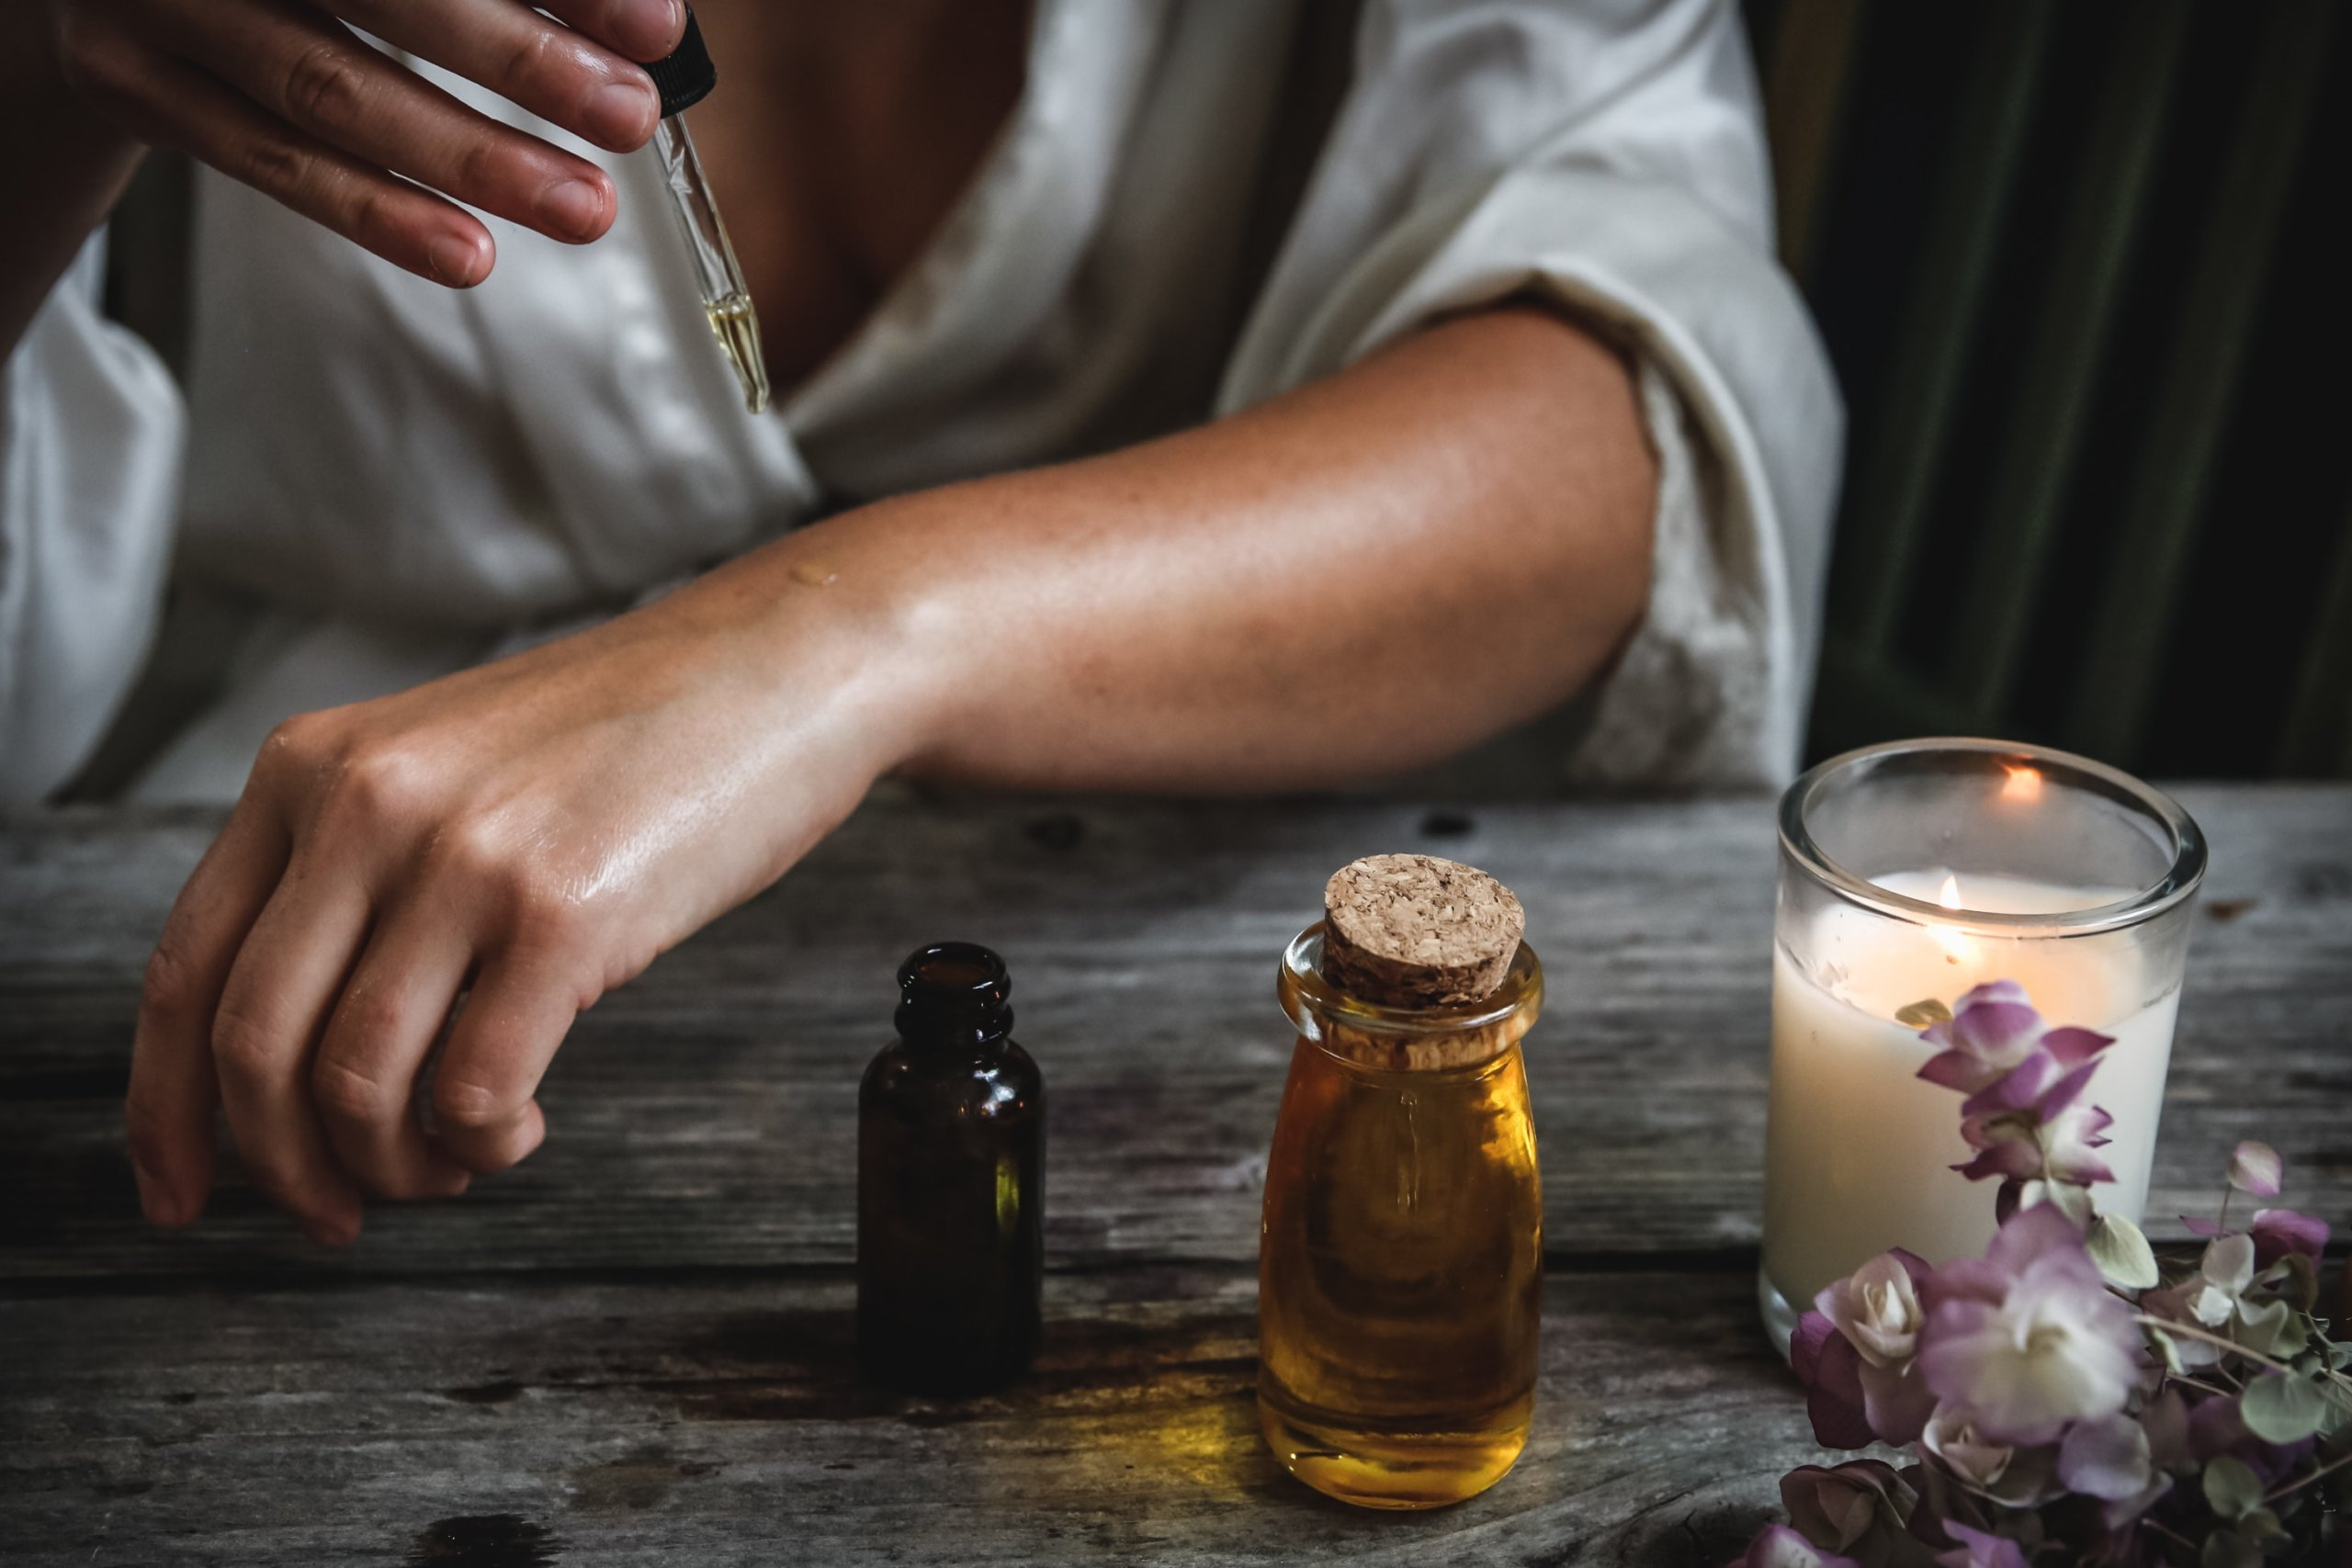 Woman placing oil onto her skin with a dropper with a candle lit next to her